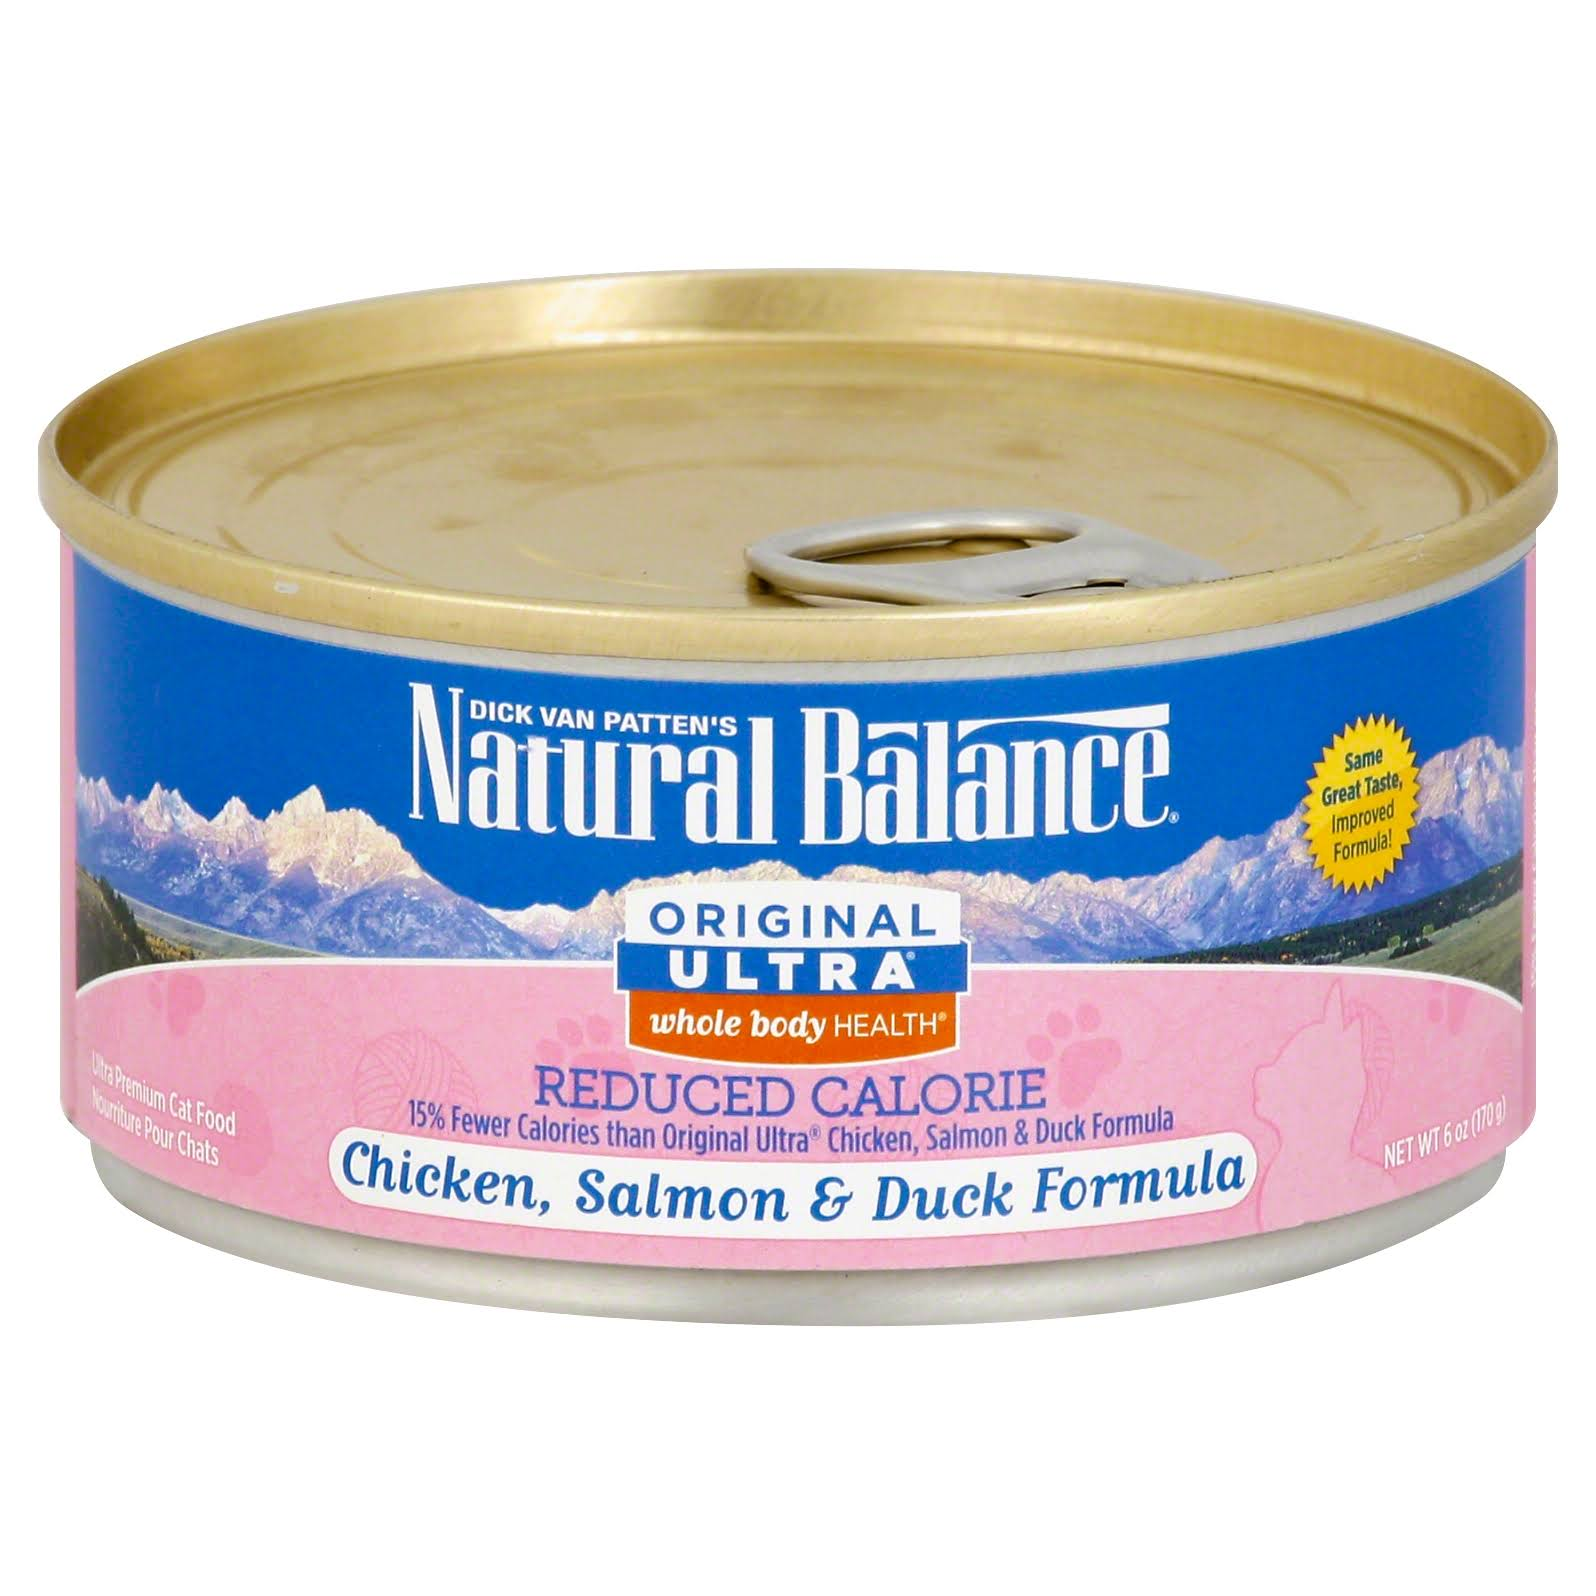 Natural Balance Original Ultra Reduced Calorie Cat Food - 6oz